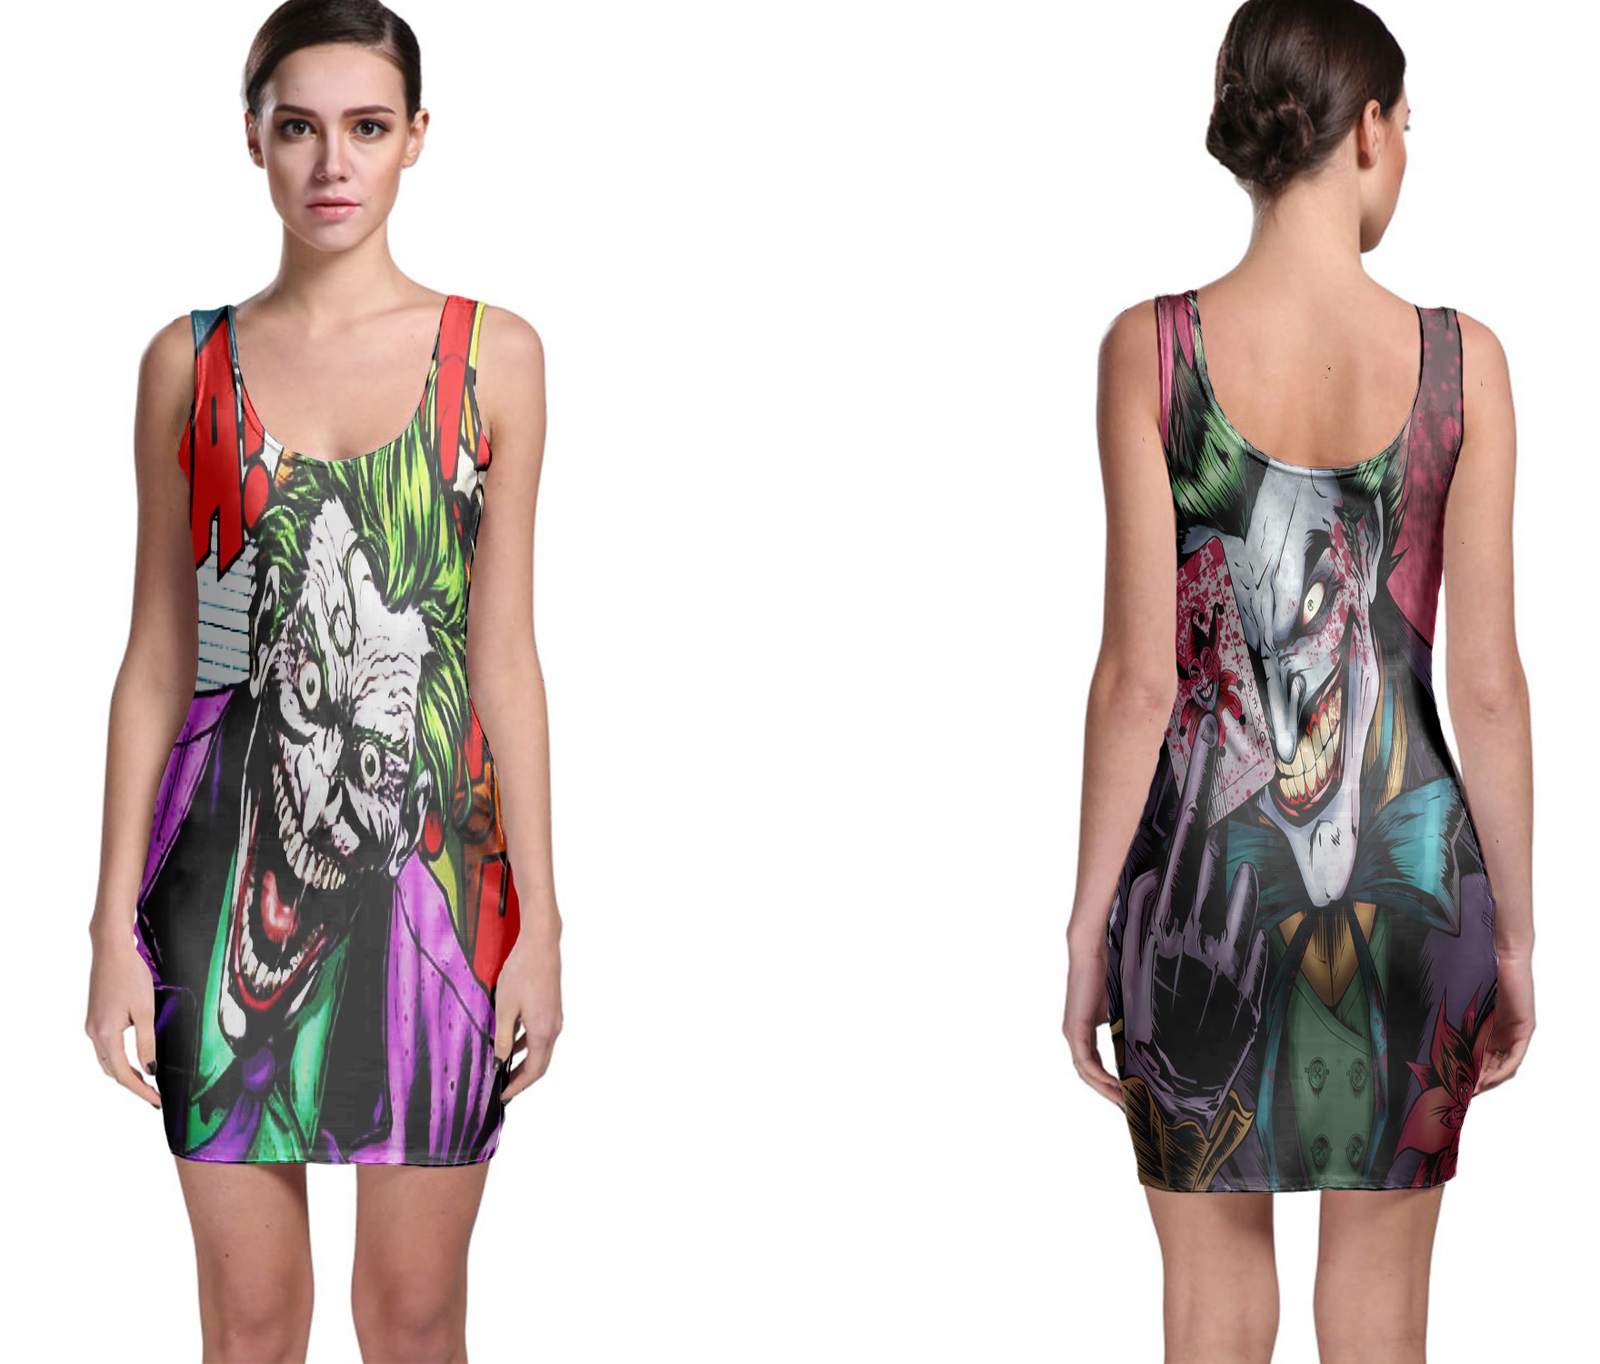 Joker bodycon dress